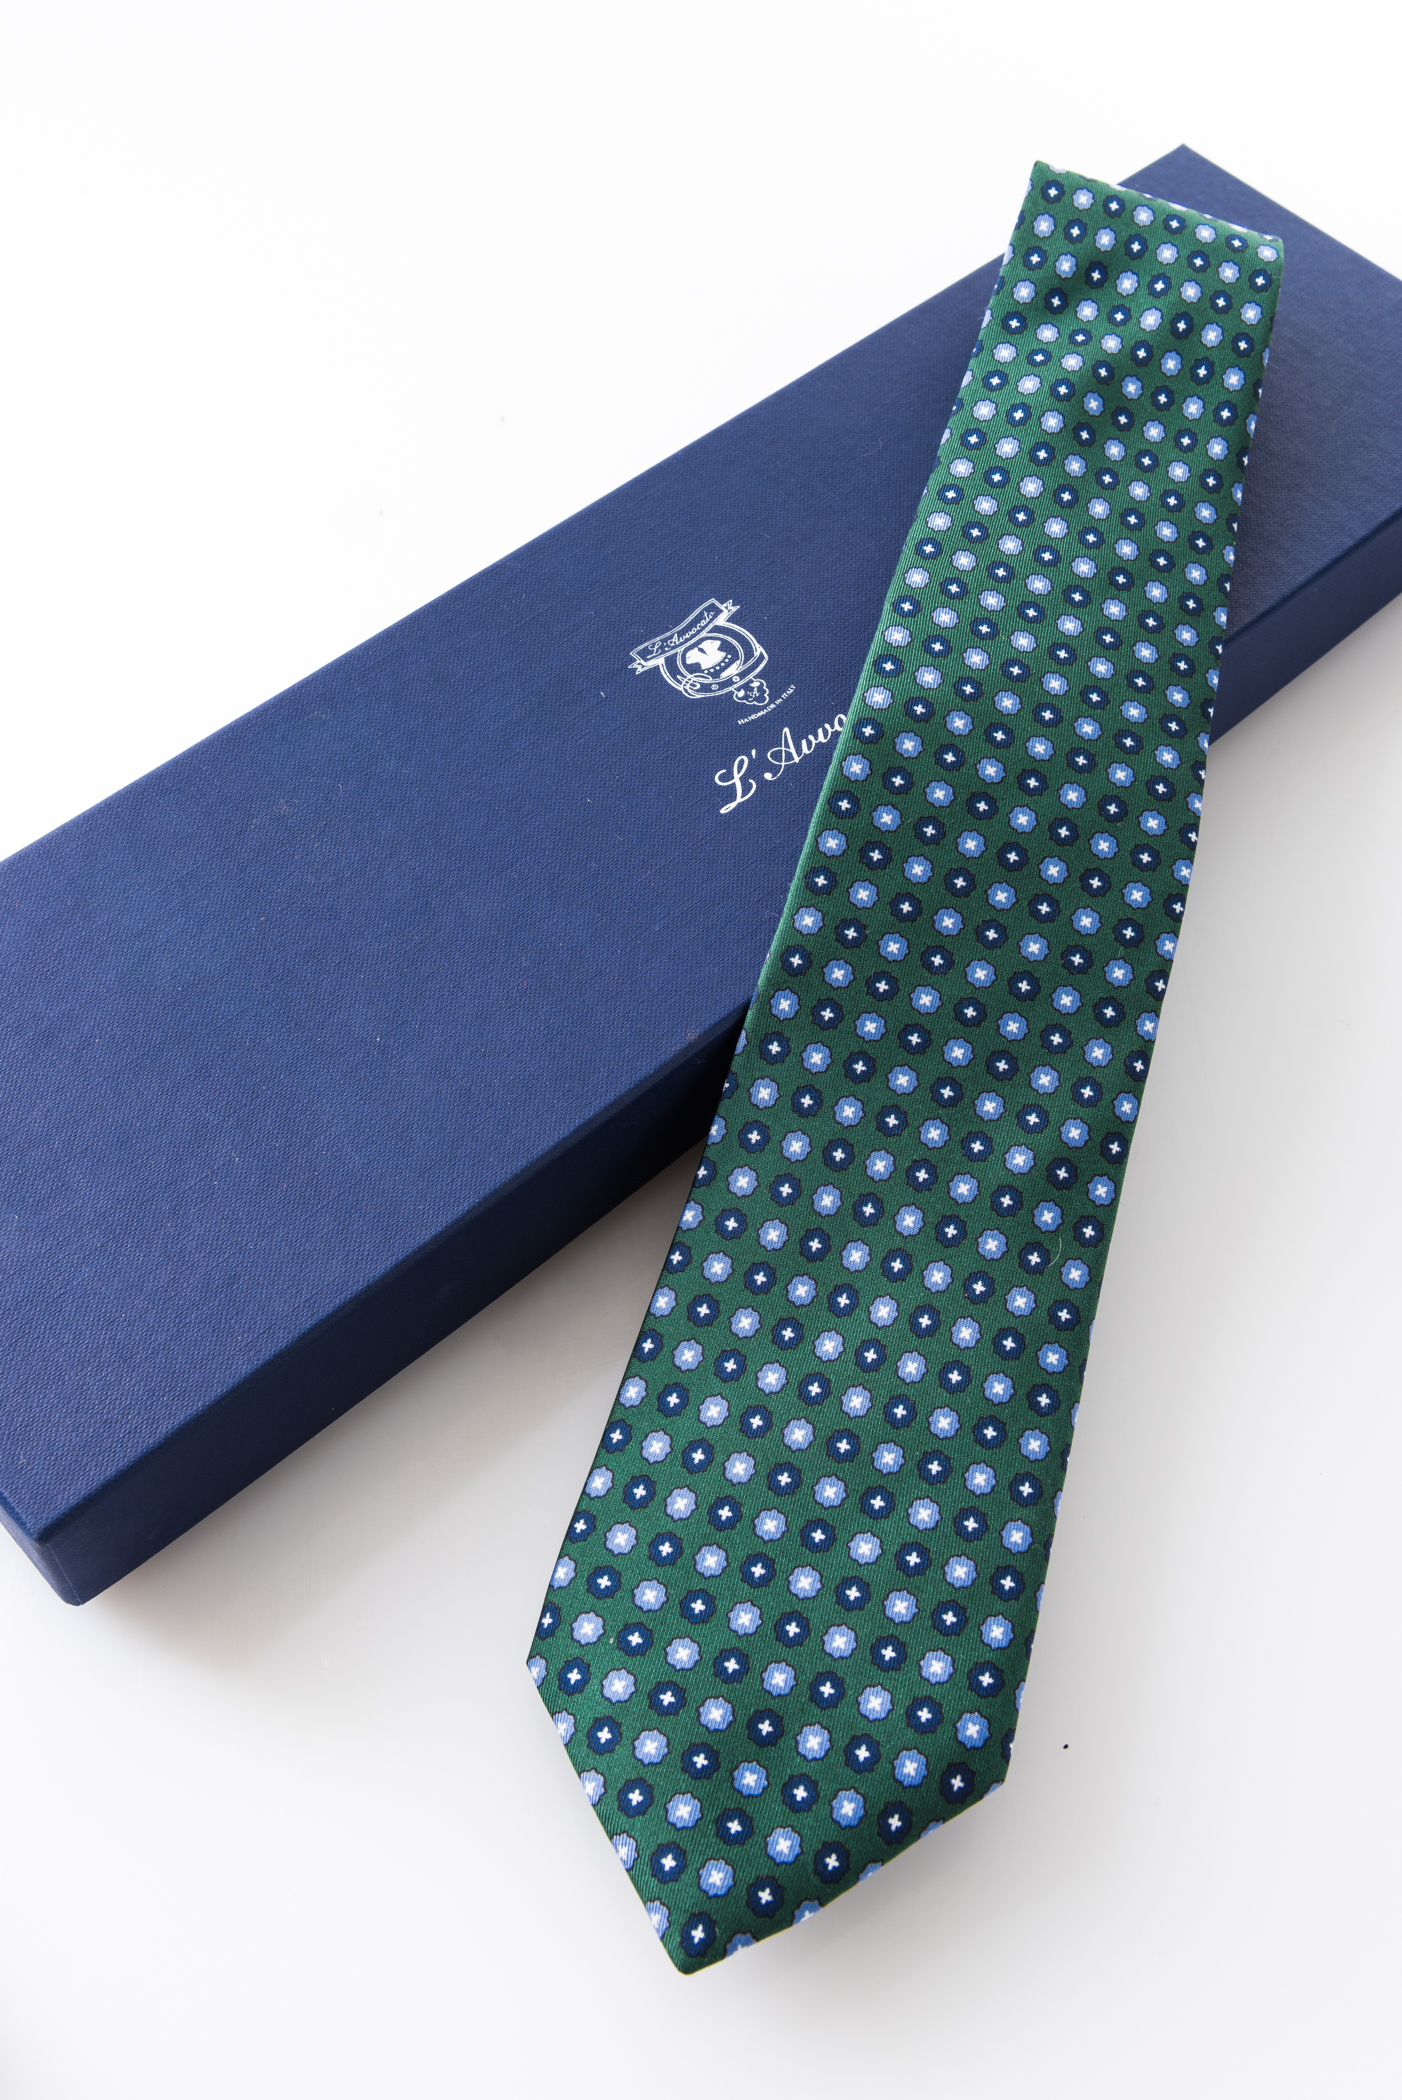 Seven-fold Tie – Aniceta Verde – and its packaging